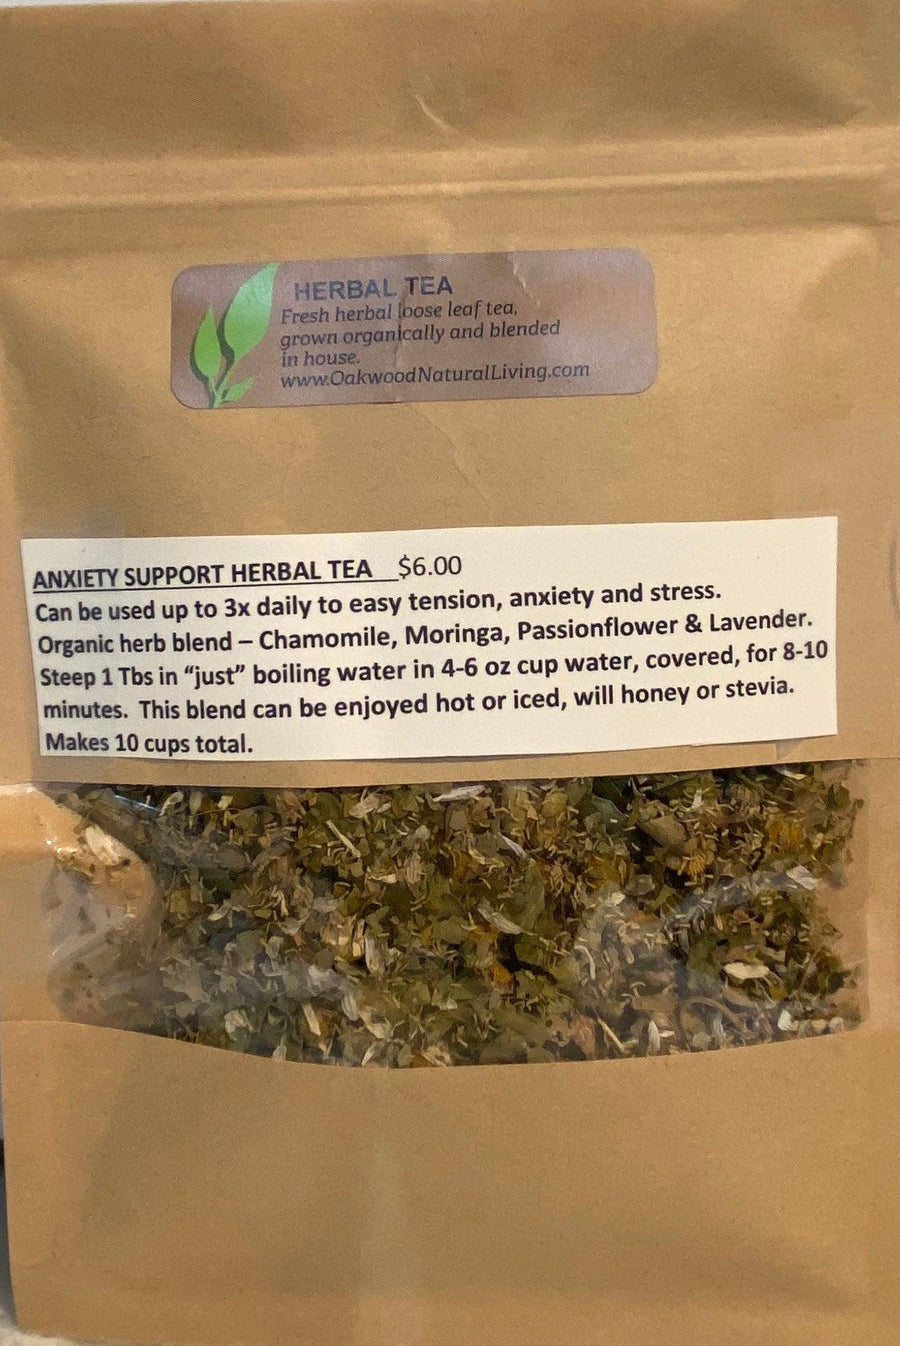 Anxiety Support Herbal Tea